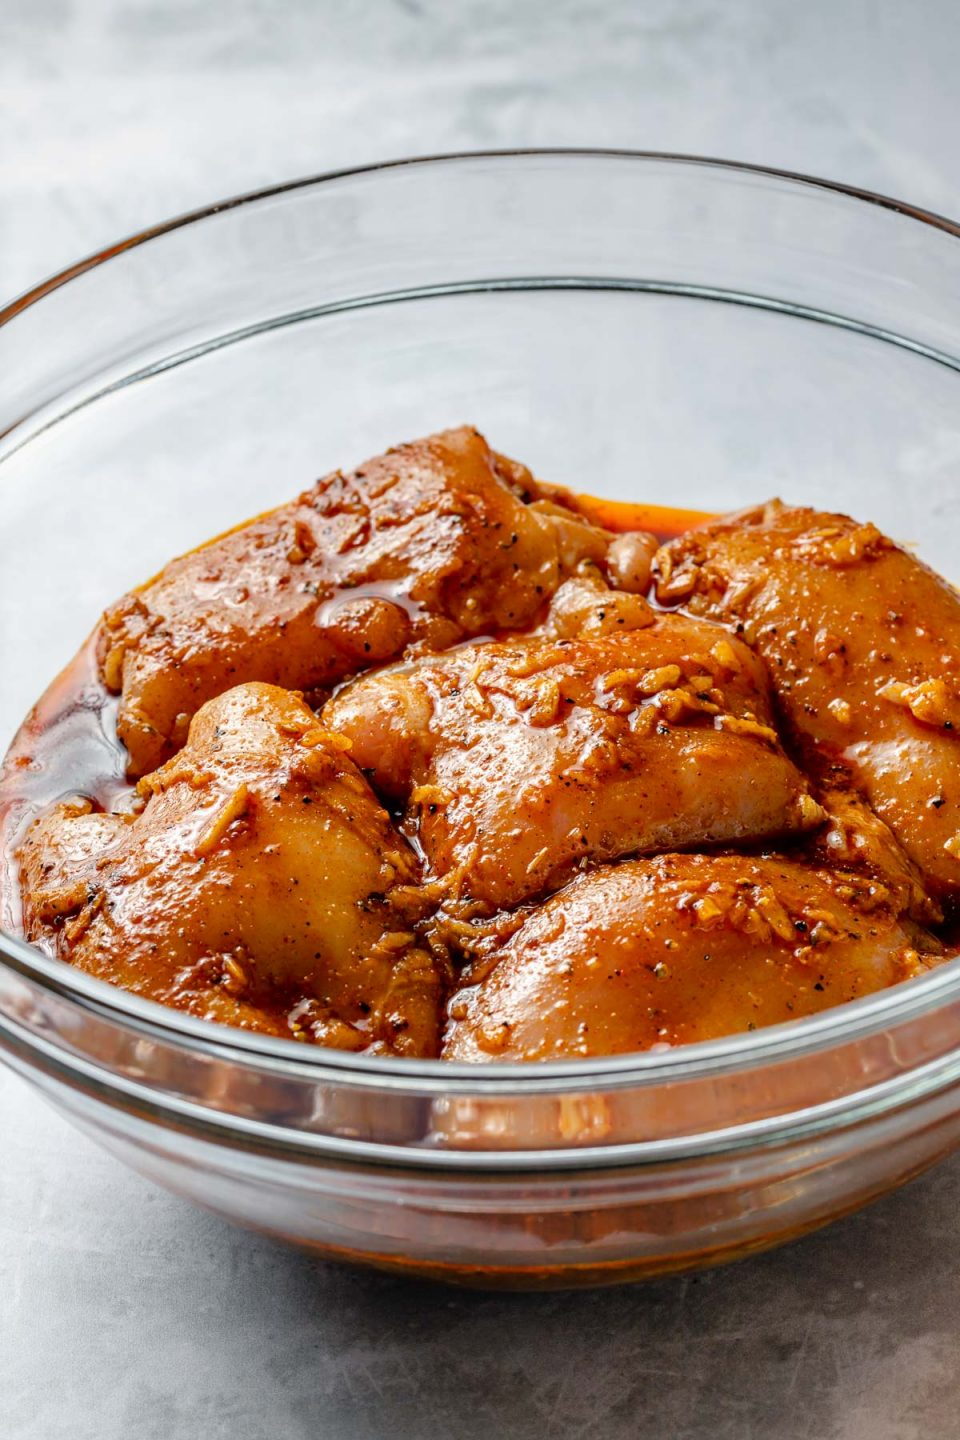 Side angle of chicken thighs in a large glass mixing bowl, marinating in Shawarma marinade. The bowl sits atop a light blue surface.